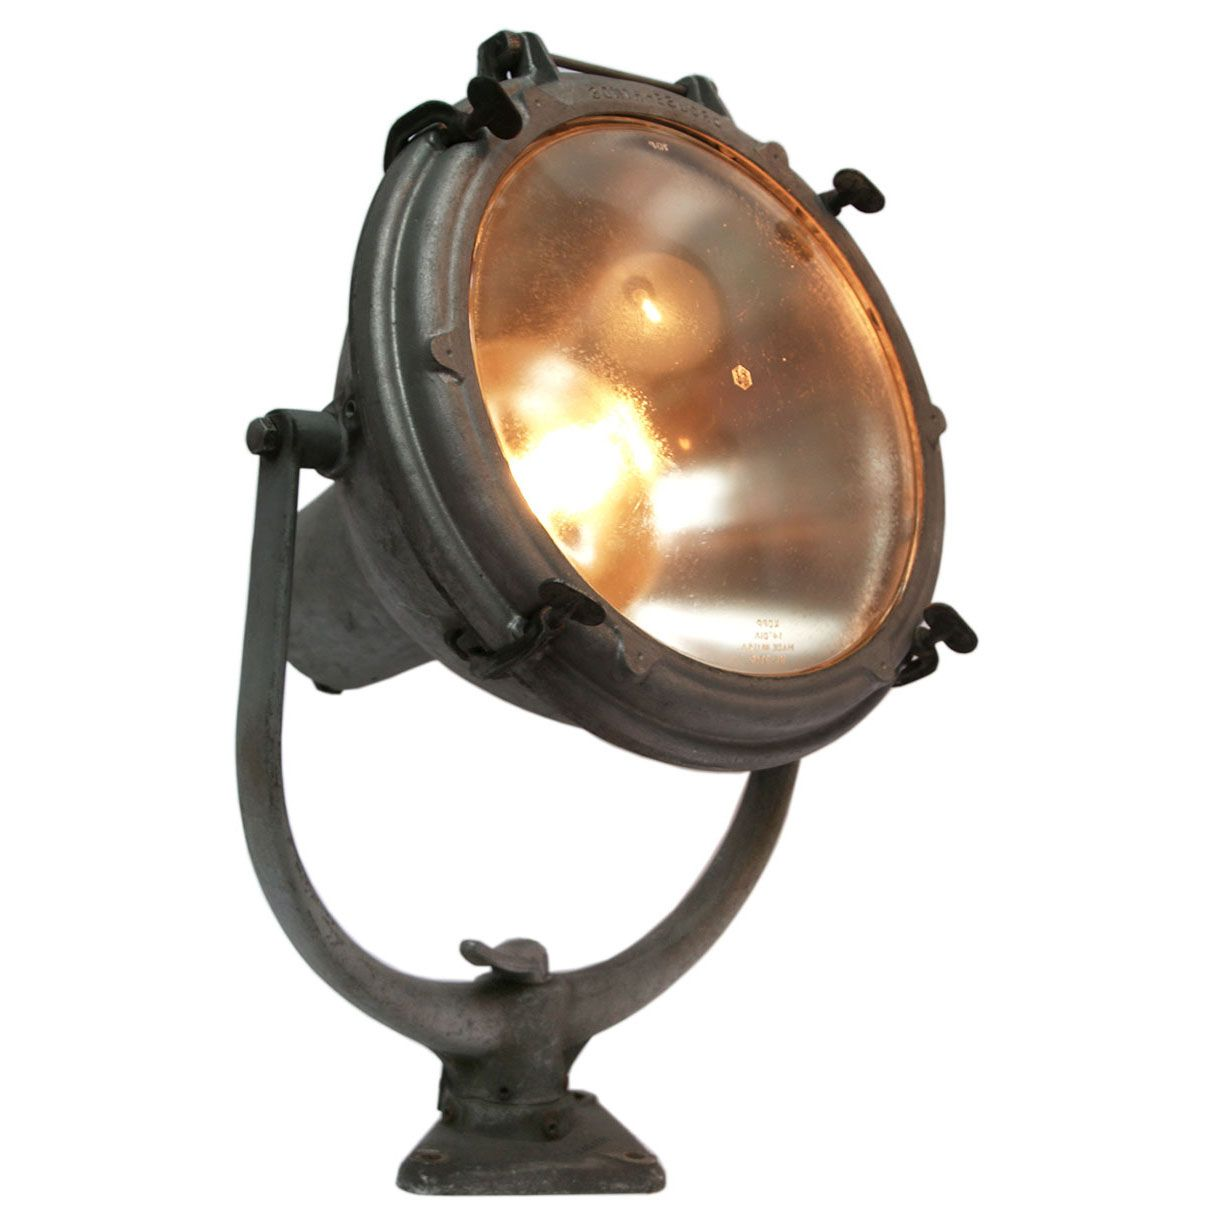 Crouse Hinds Spot | Lights | 360volt. The Biggest Collection Vintage  Industrial Lighting. Specialized In Factory, Enamel And Industrial Lamps.  Www.360volt. ...